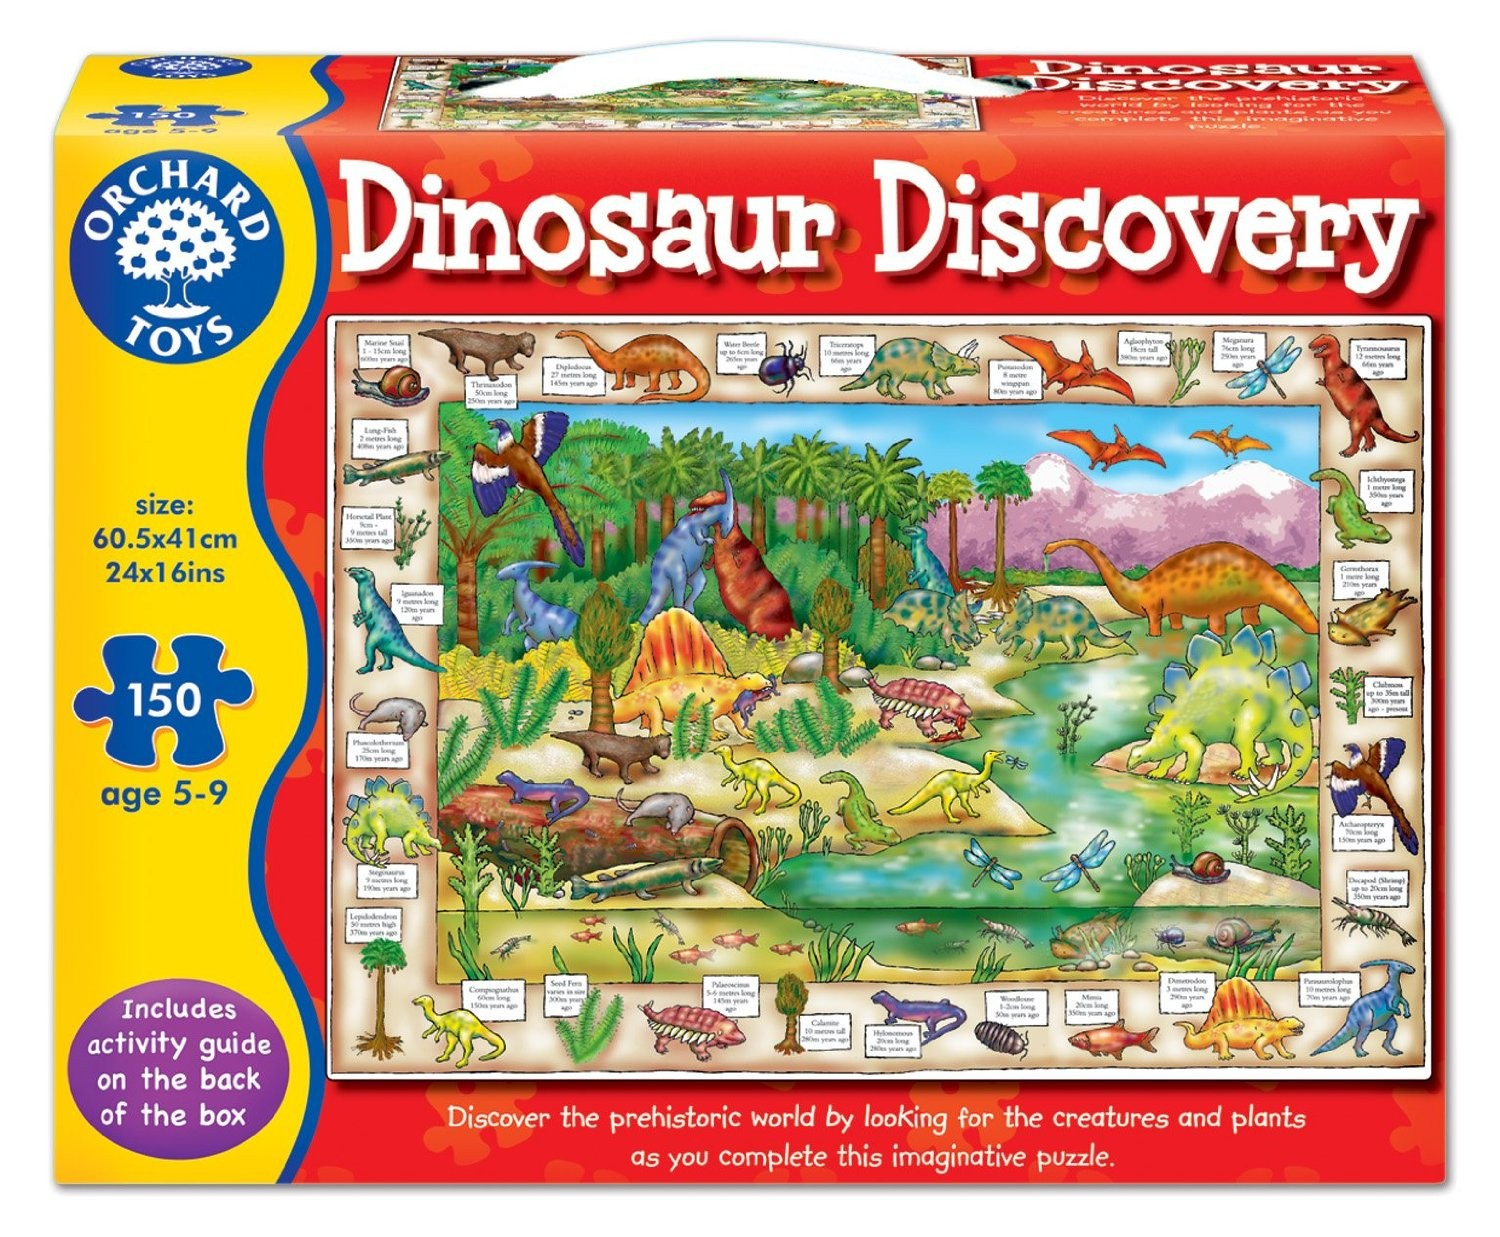 Dinosaur Discovery by Orchard Toys